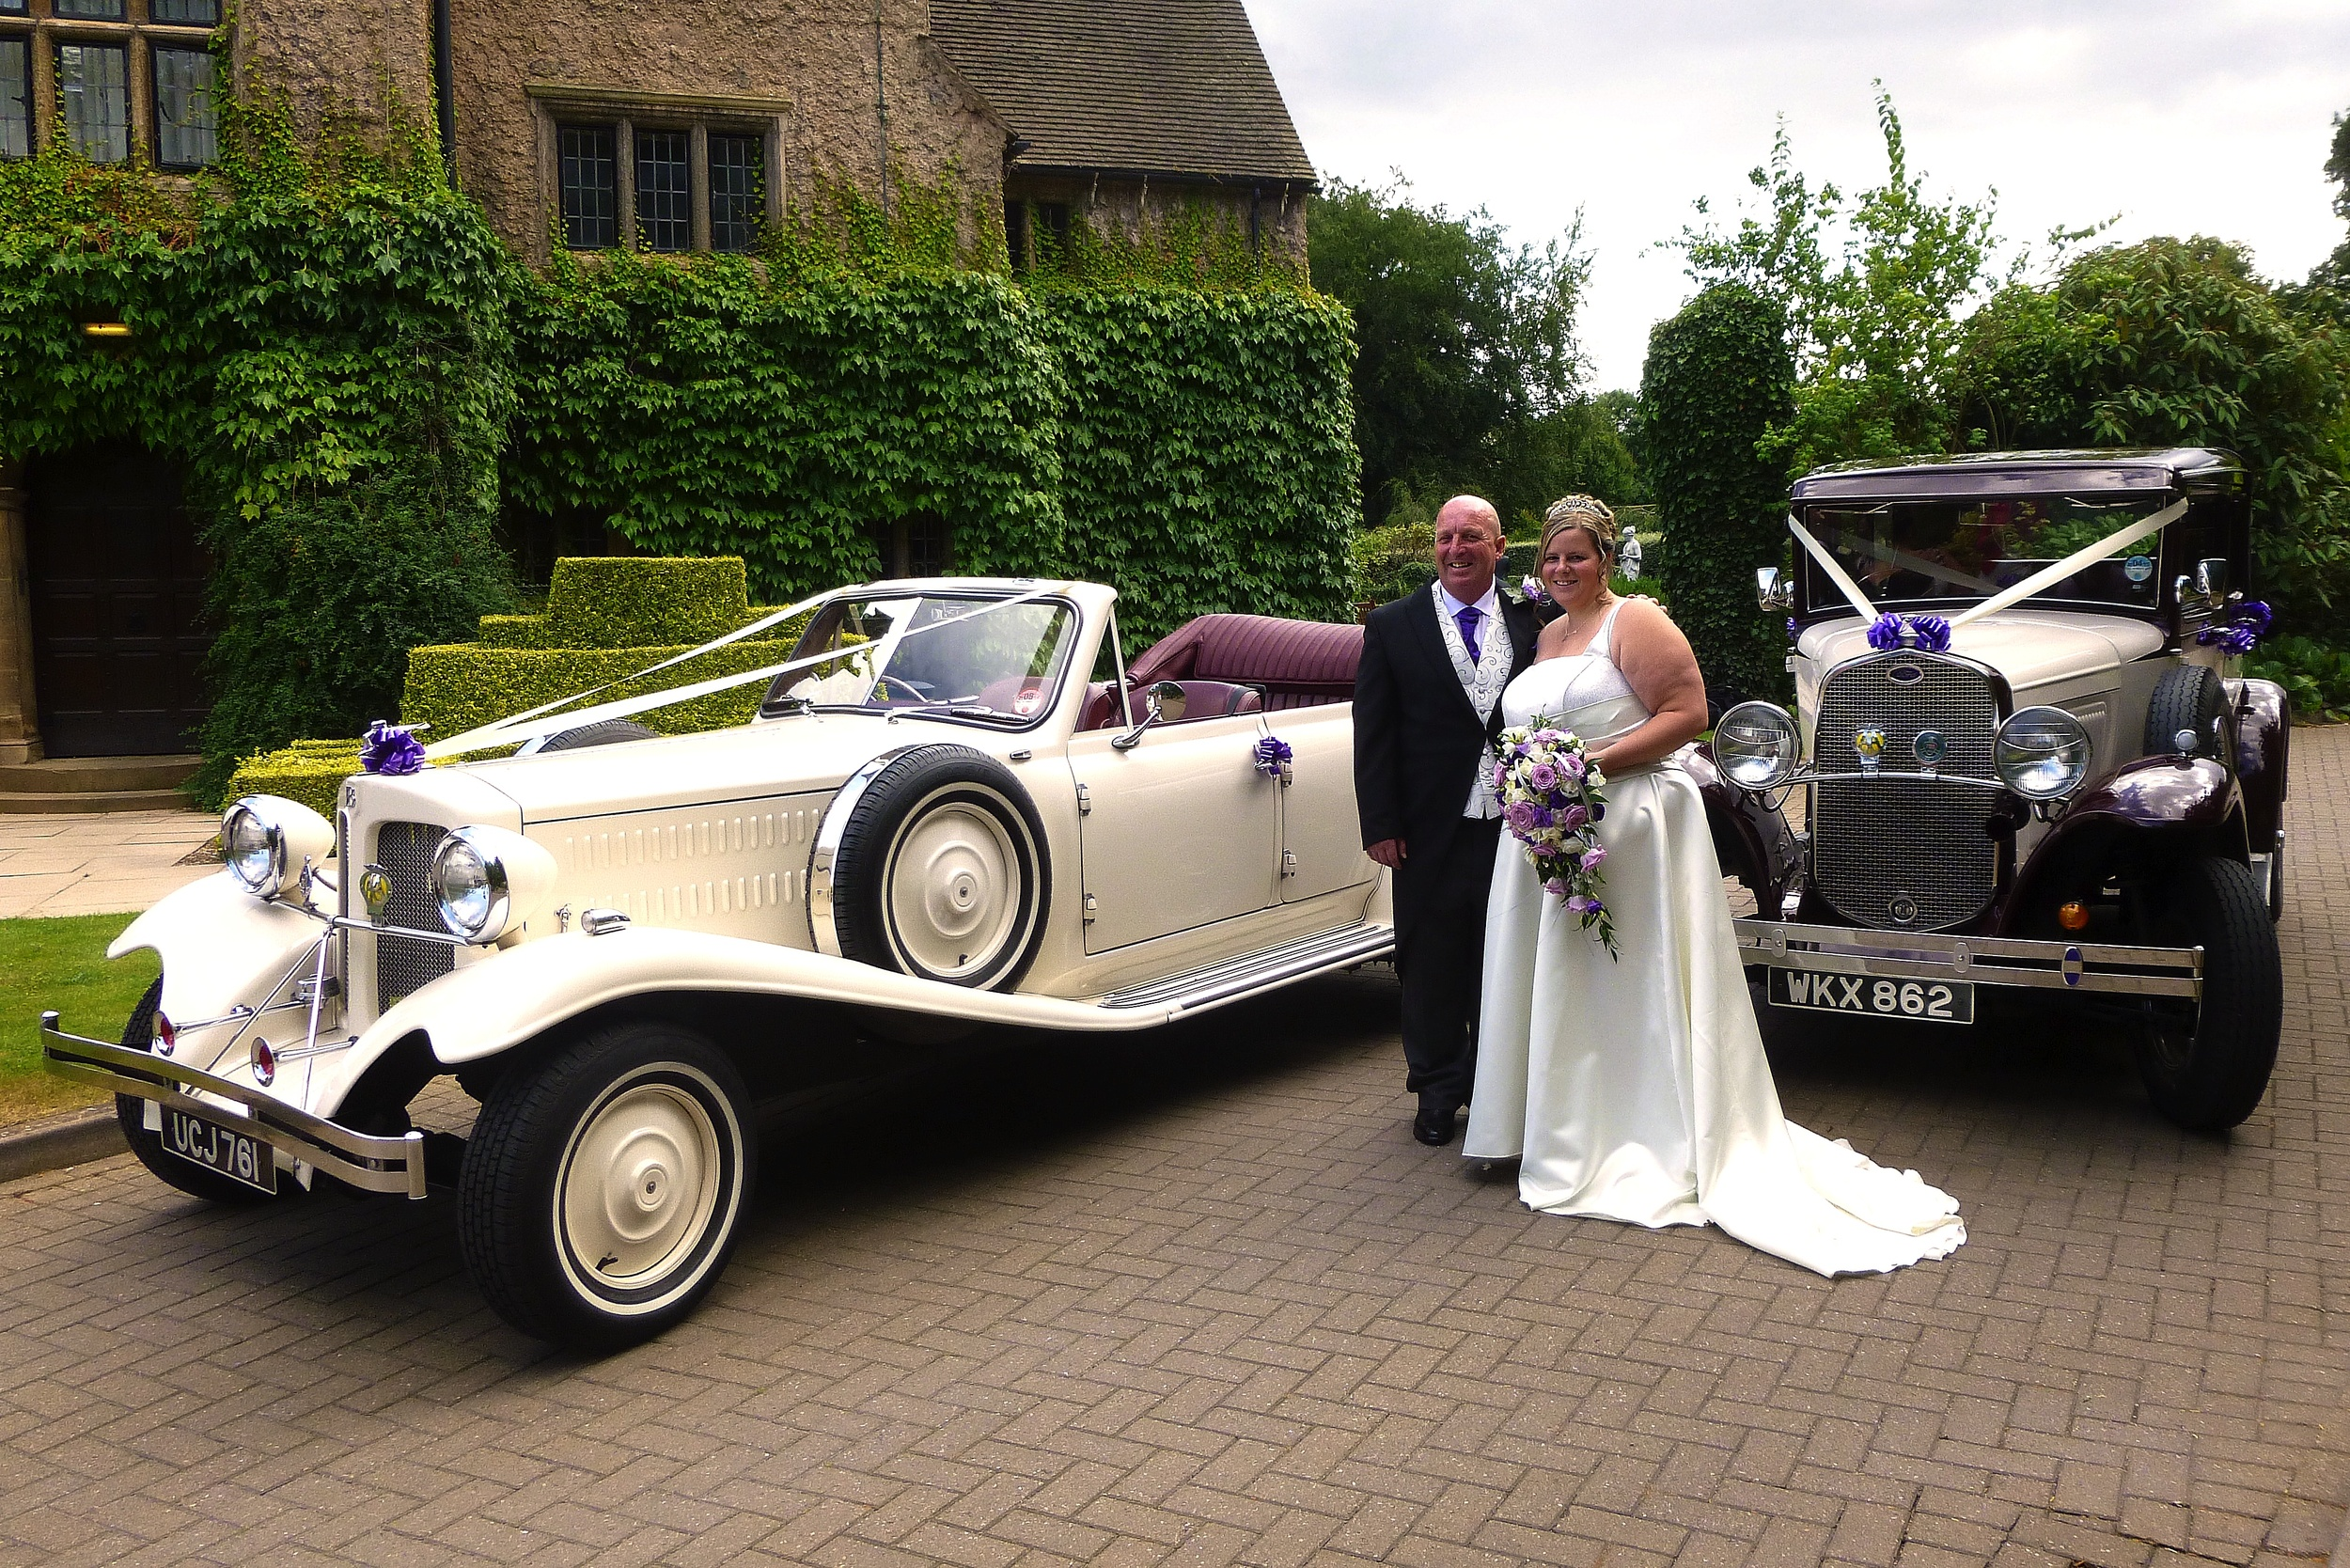 """Tara and Maurice pause for photos by the cars at Quorn Grange, following a lovely """"open top"""" drive around Quorn in the Beauford,"""